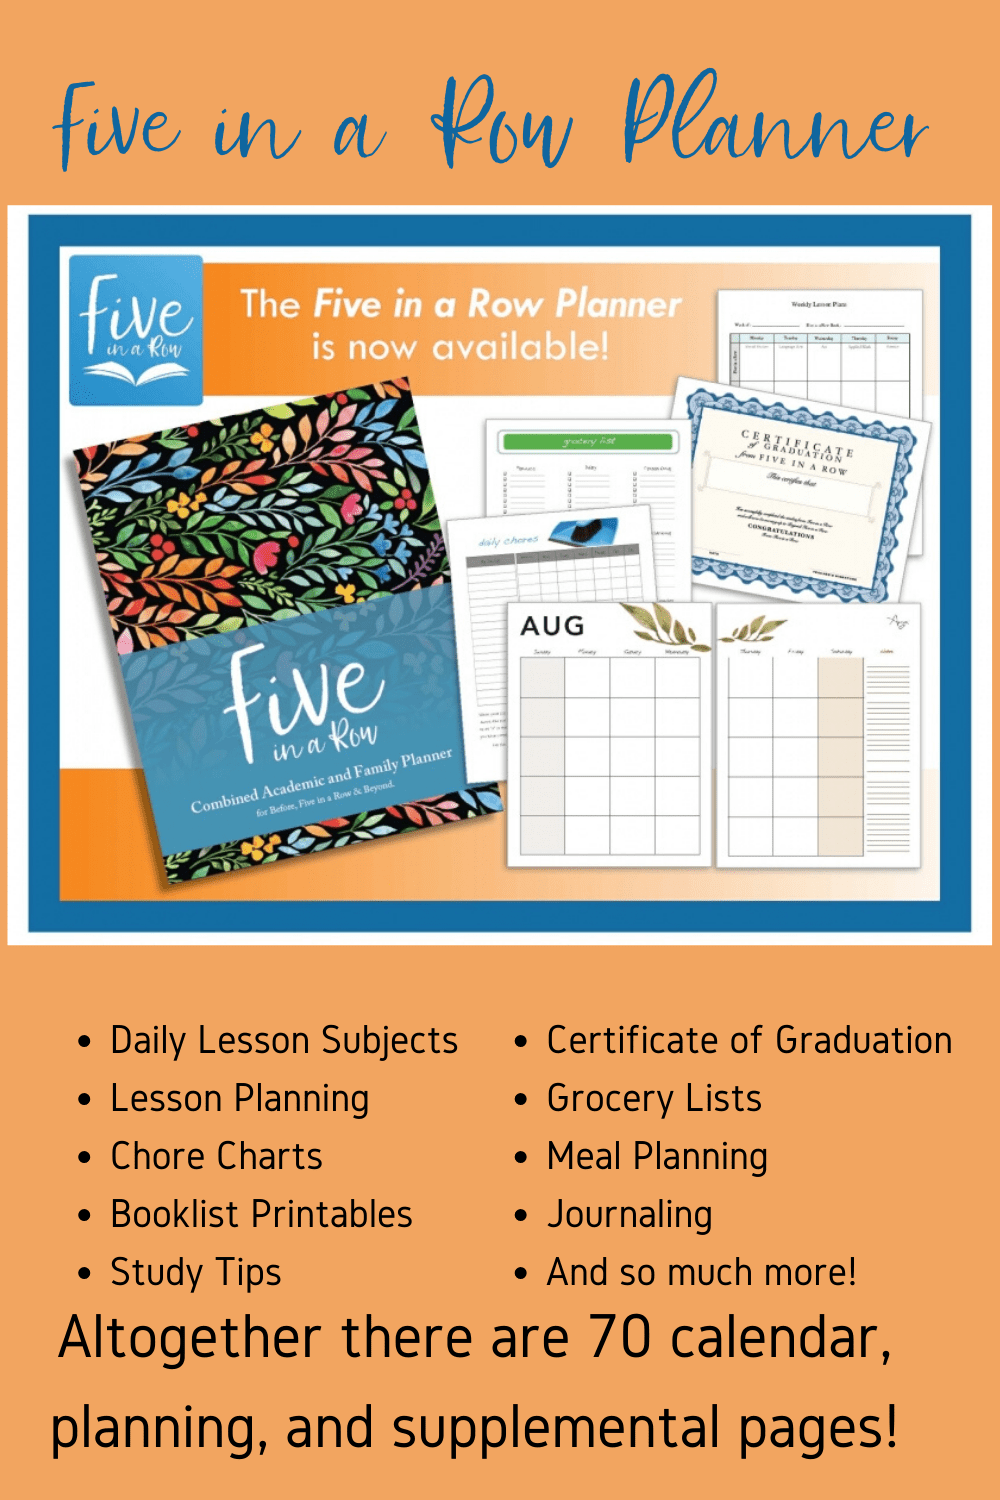 The Five in a Row Combined Family and Academic Planner was created to give you access to school planning pages specific to Five in a Row curriculum.